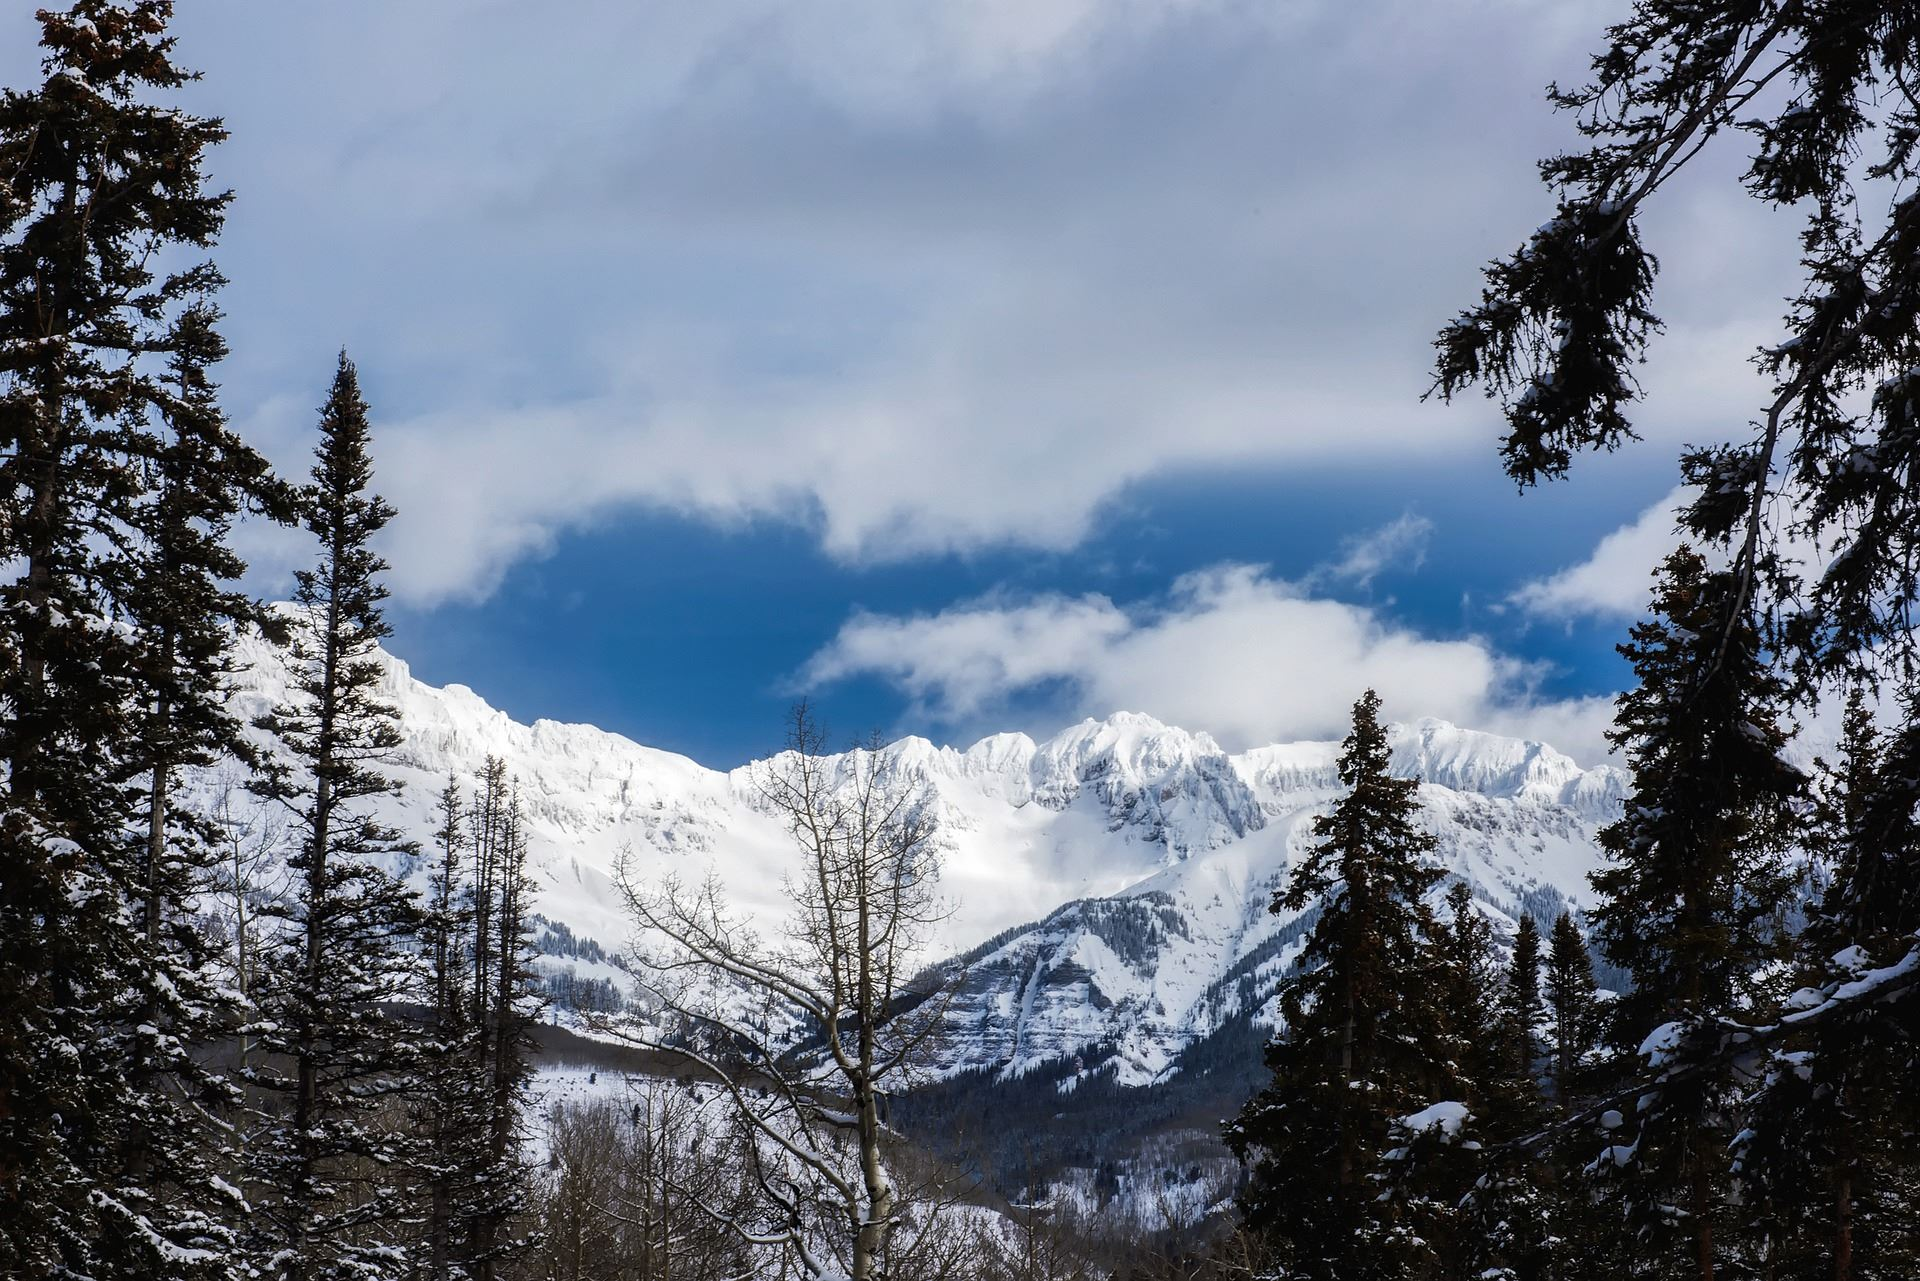 Ridgeline above Telluride after a heavy snow